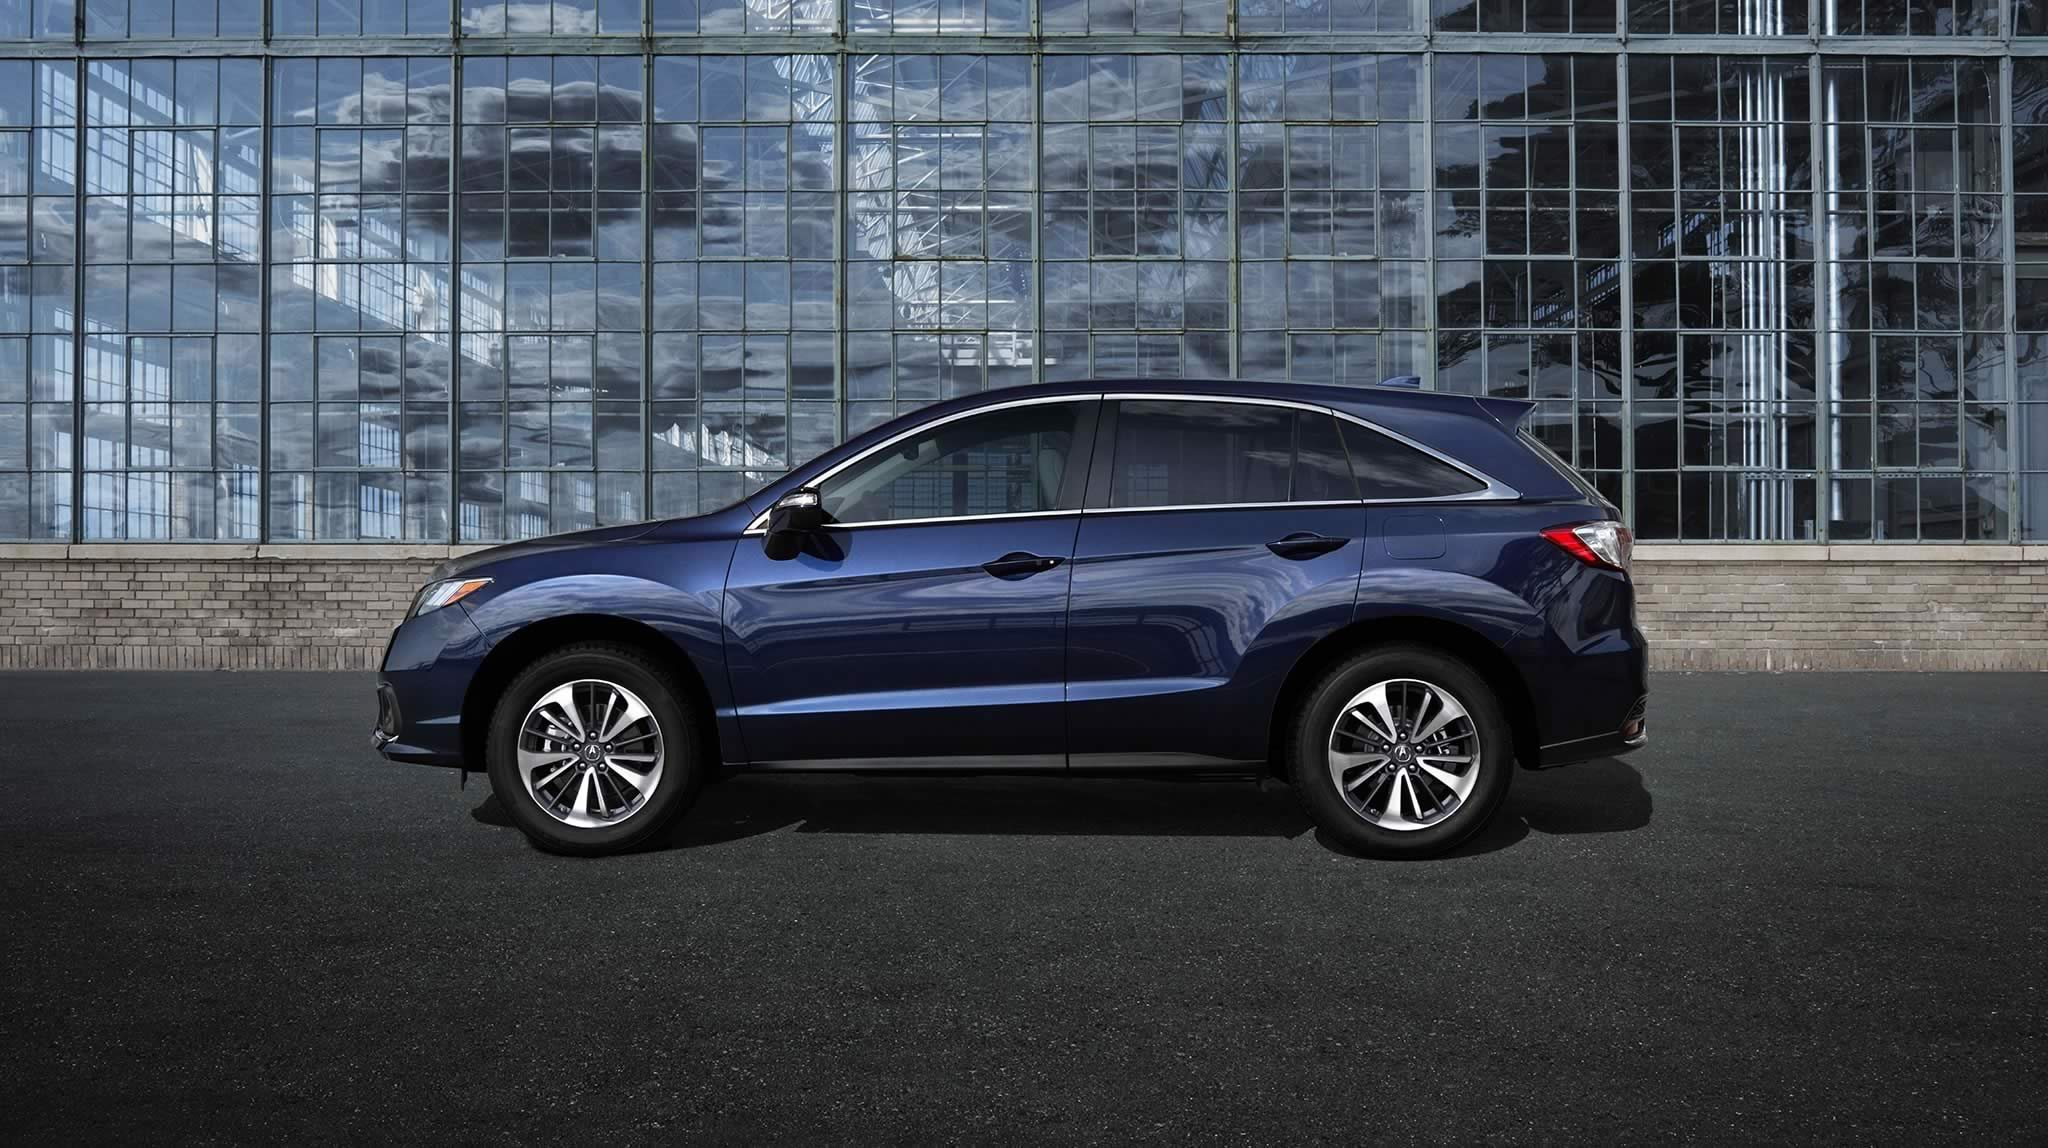 2019 Acura RDX Blue Color ADV HD Wallpaper Latest Cars